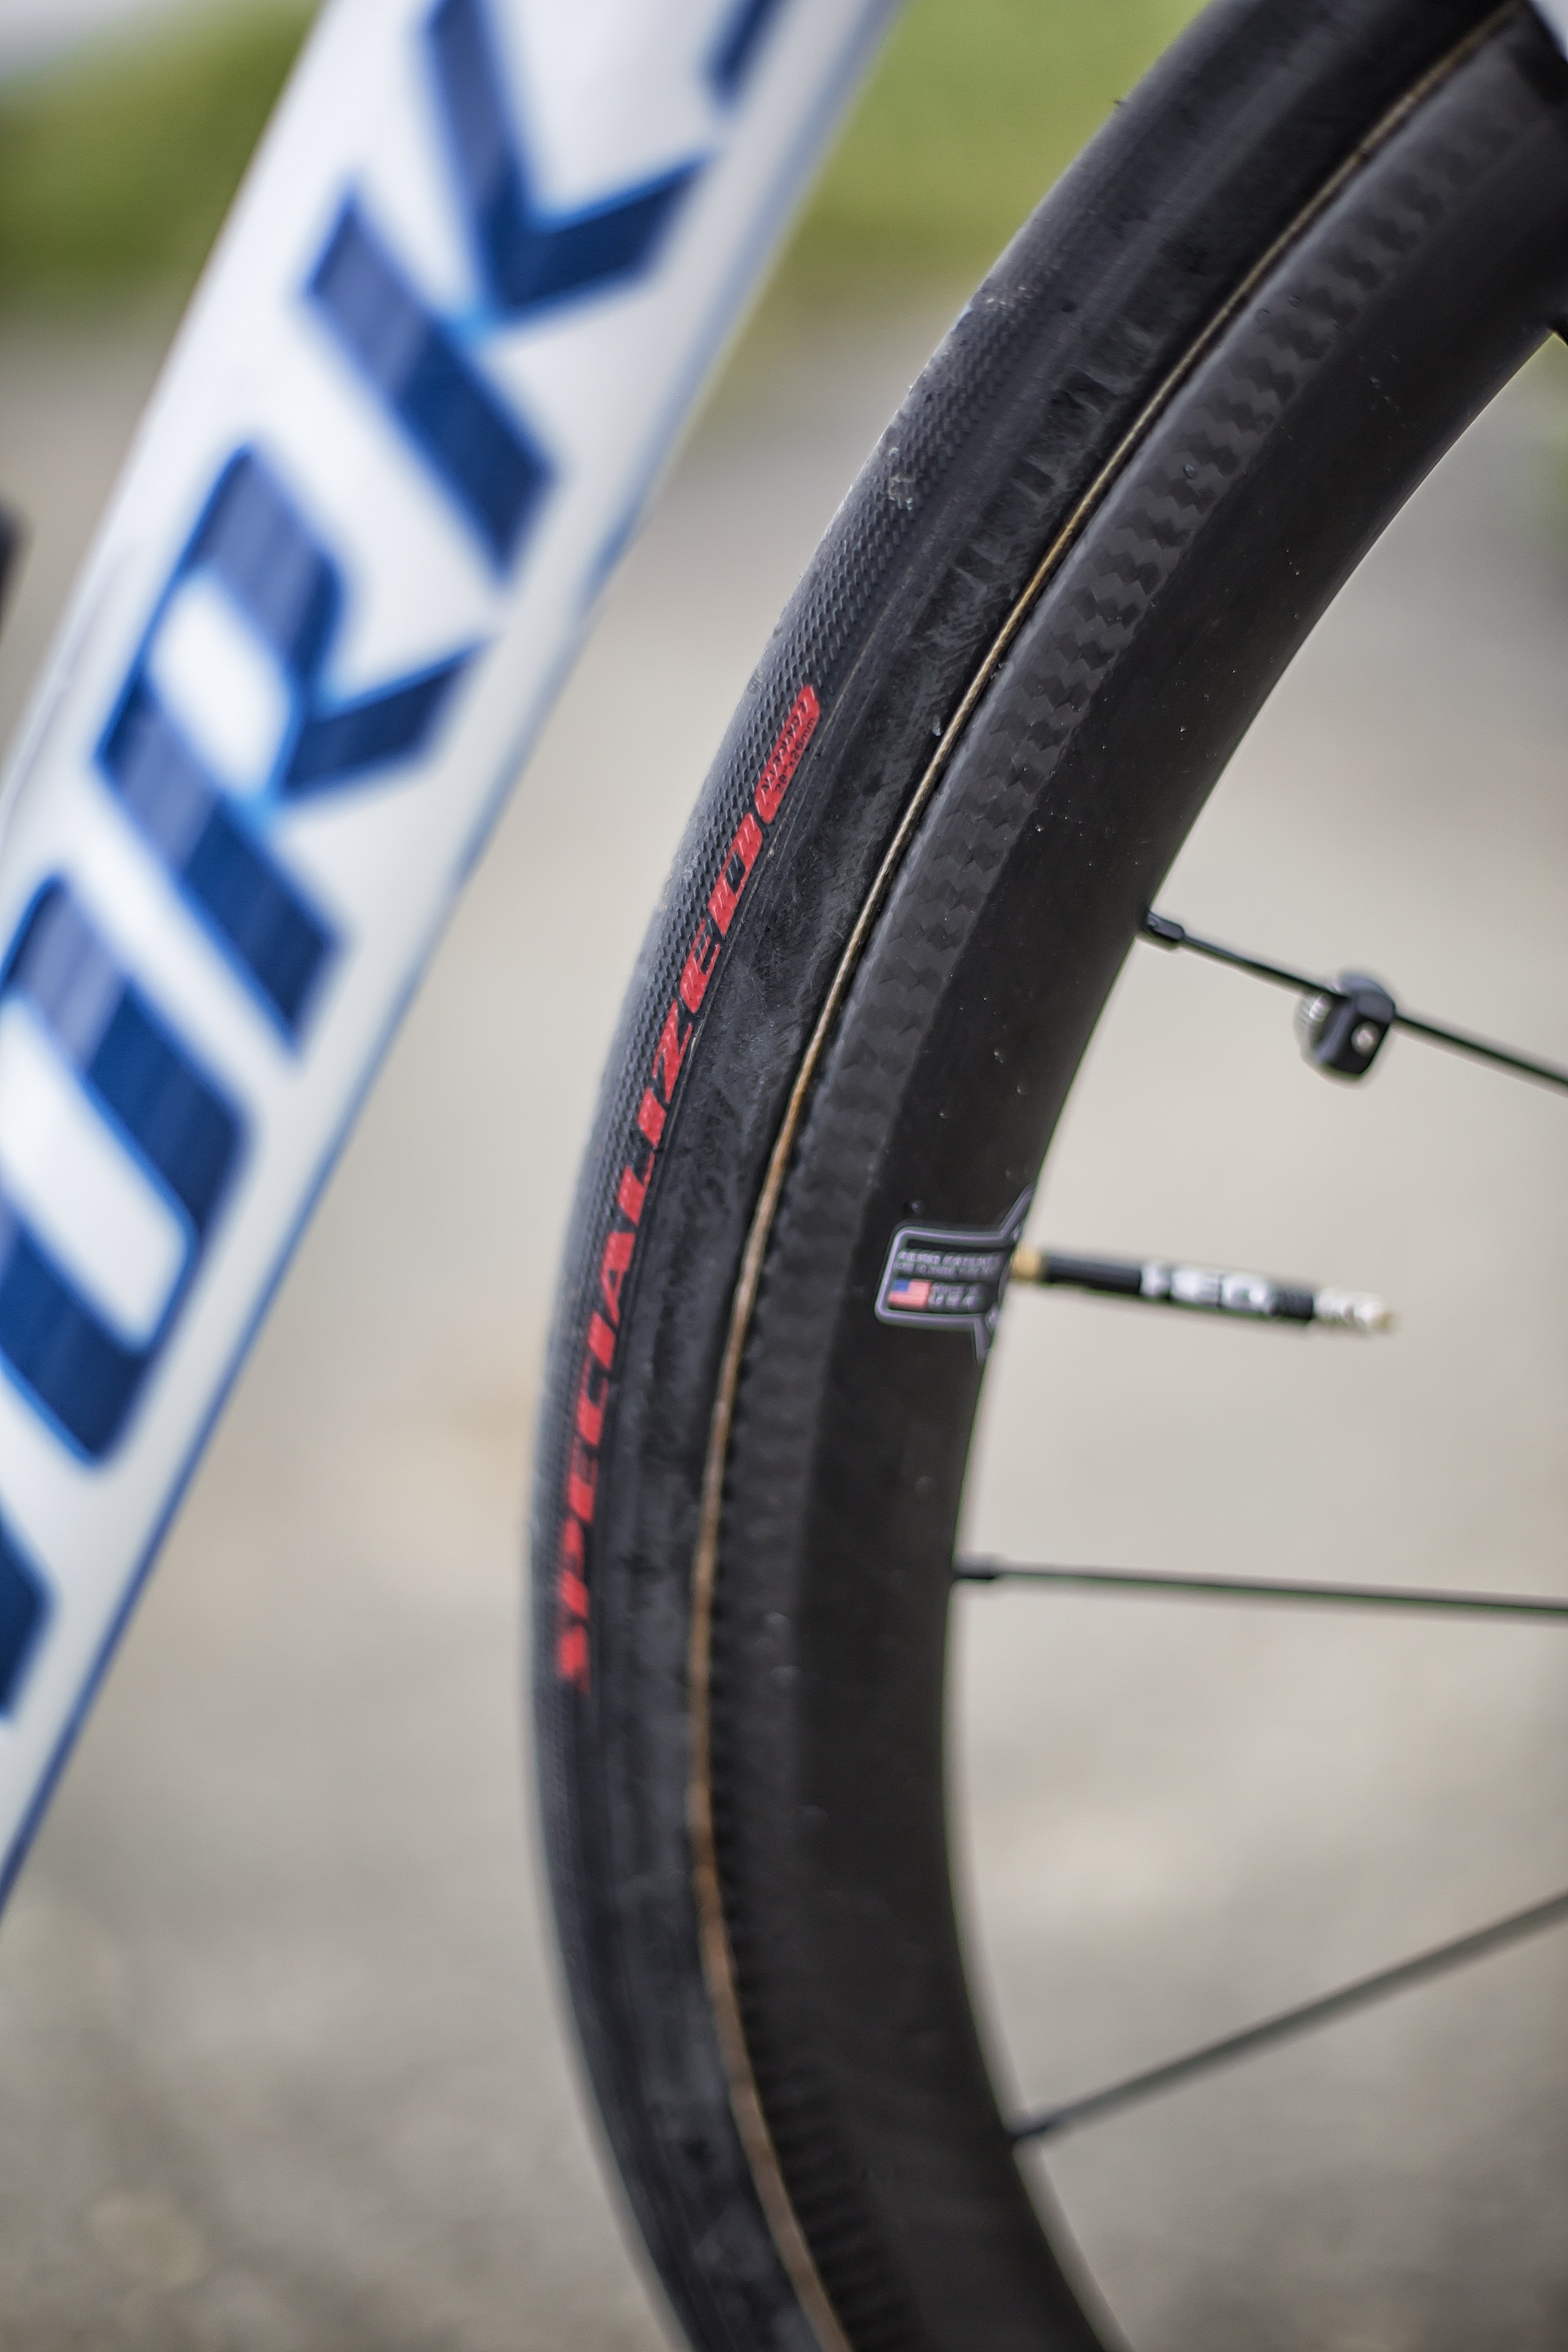 I race exclusively on 26mm tubulars, I am more confident in corners and believe the smoother ride keeps my body fresh for the run